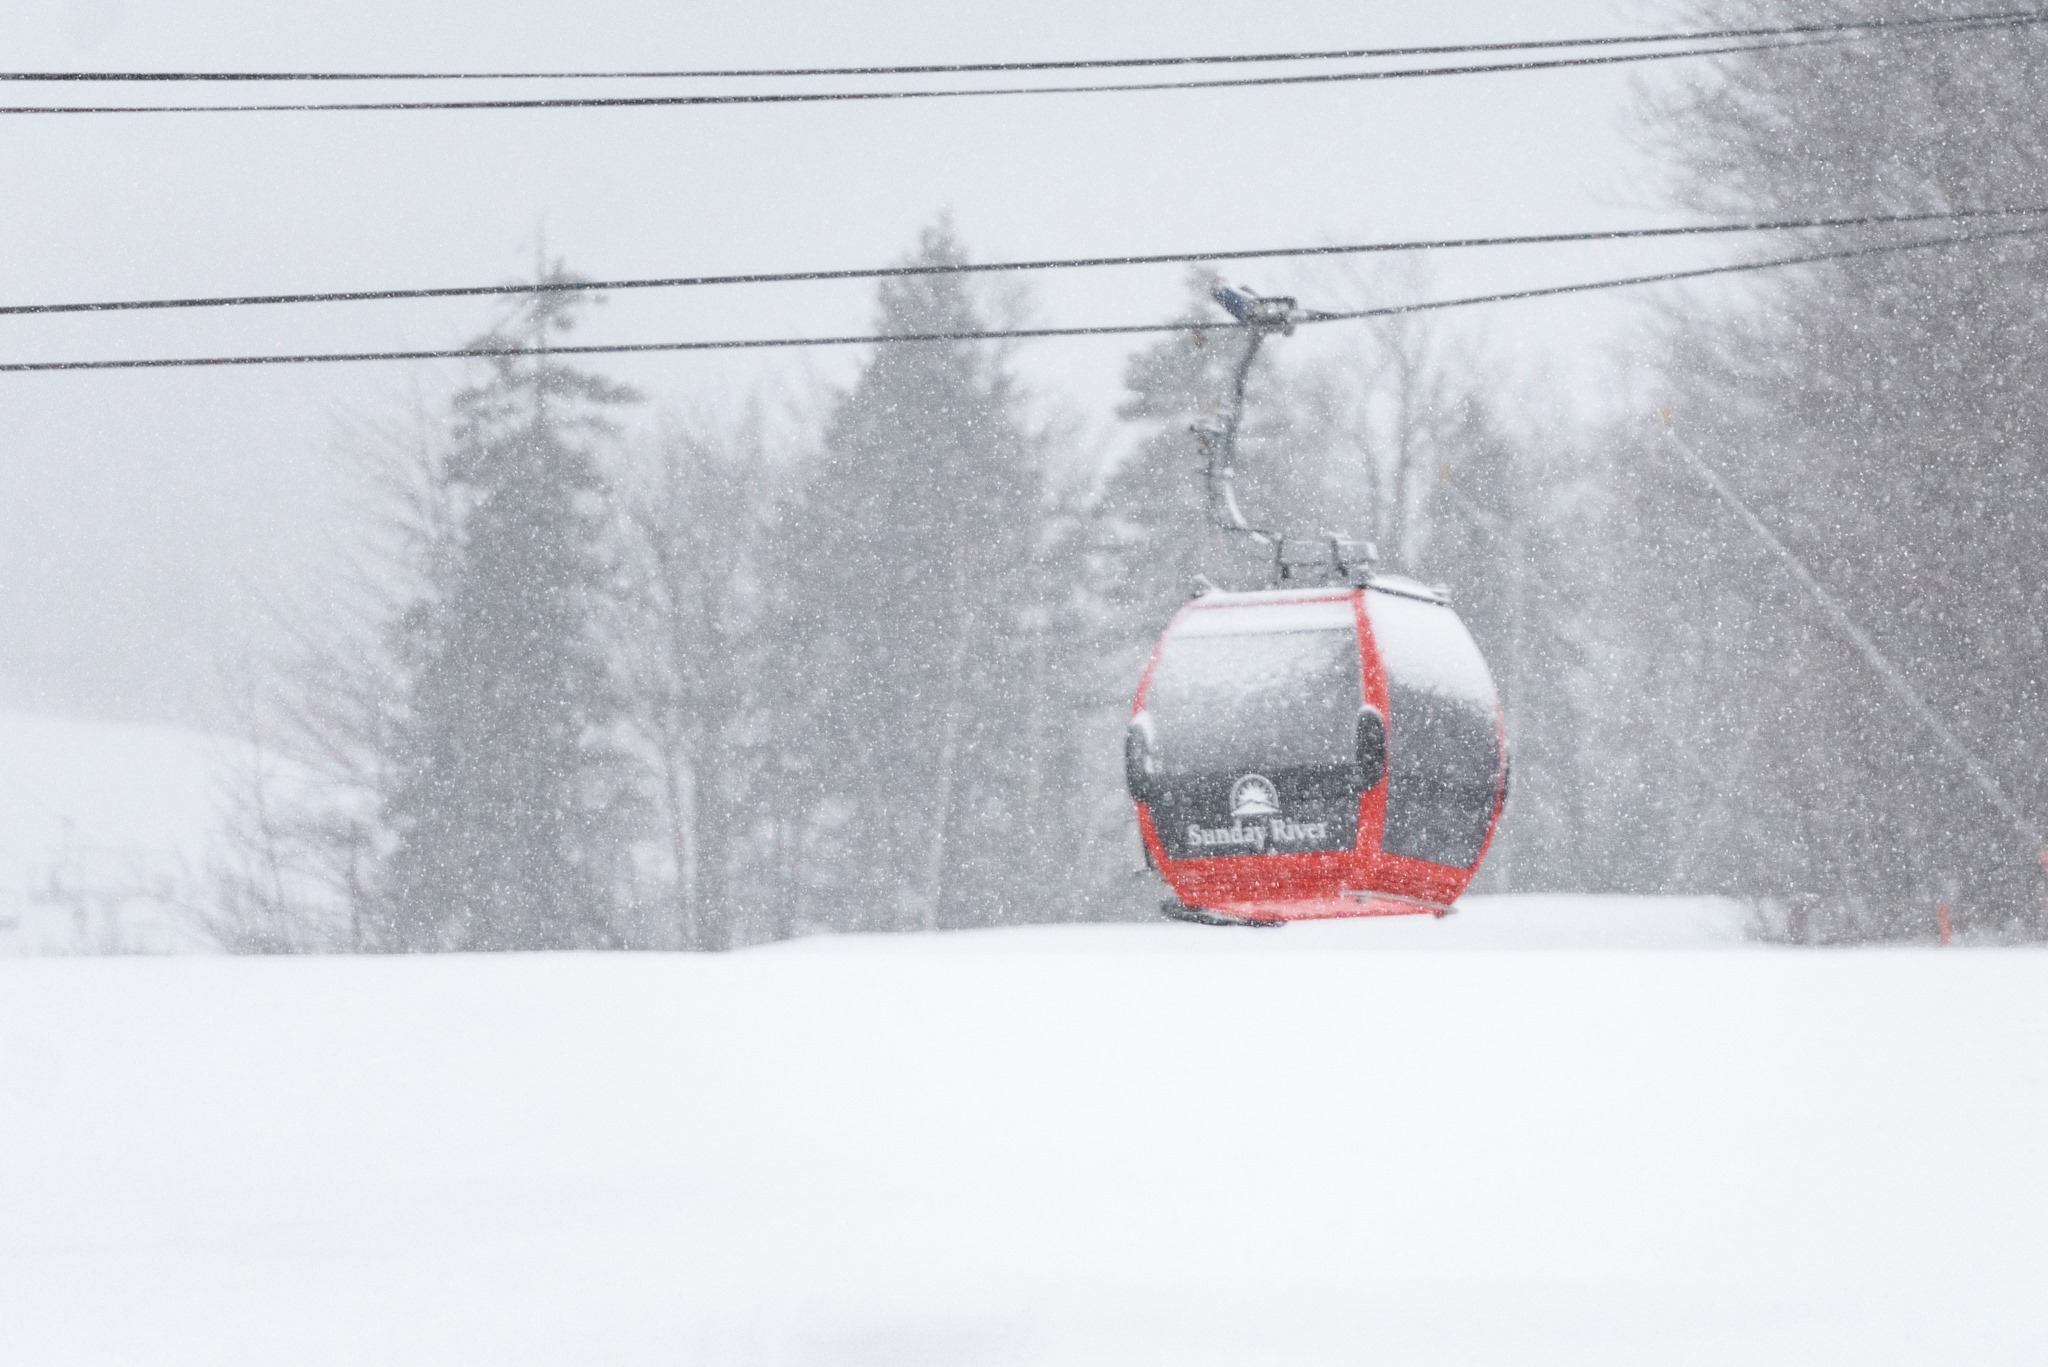 snowstorm getting started, Sunday River